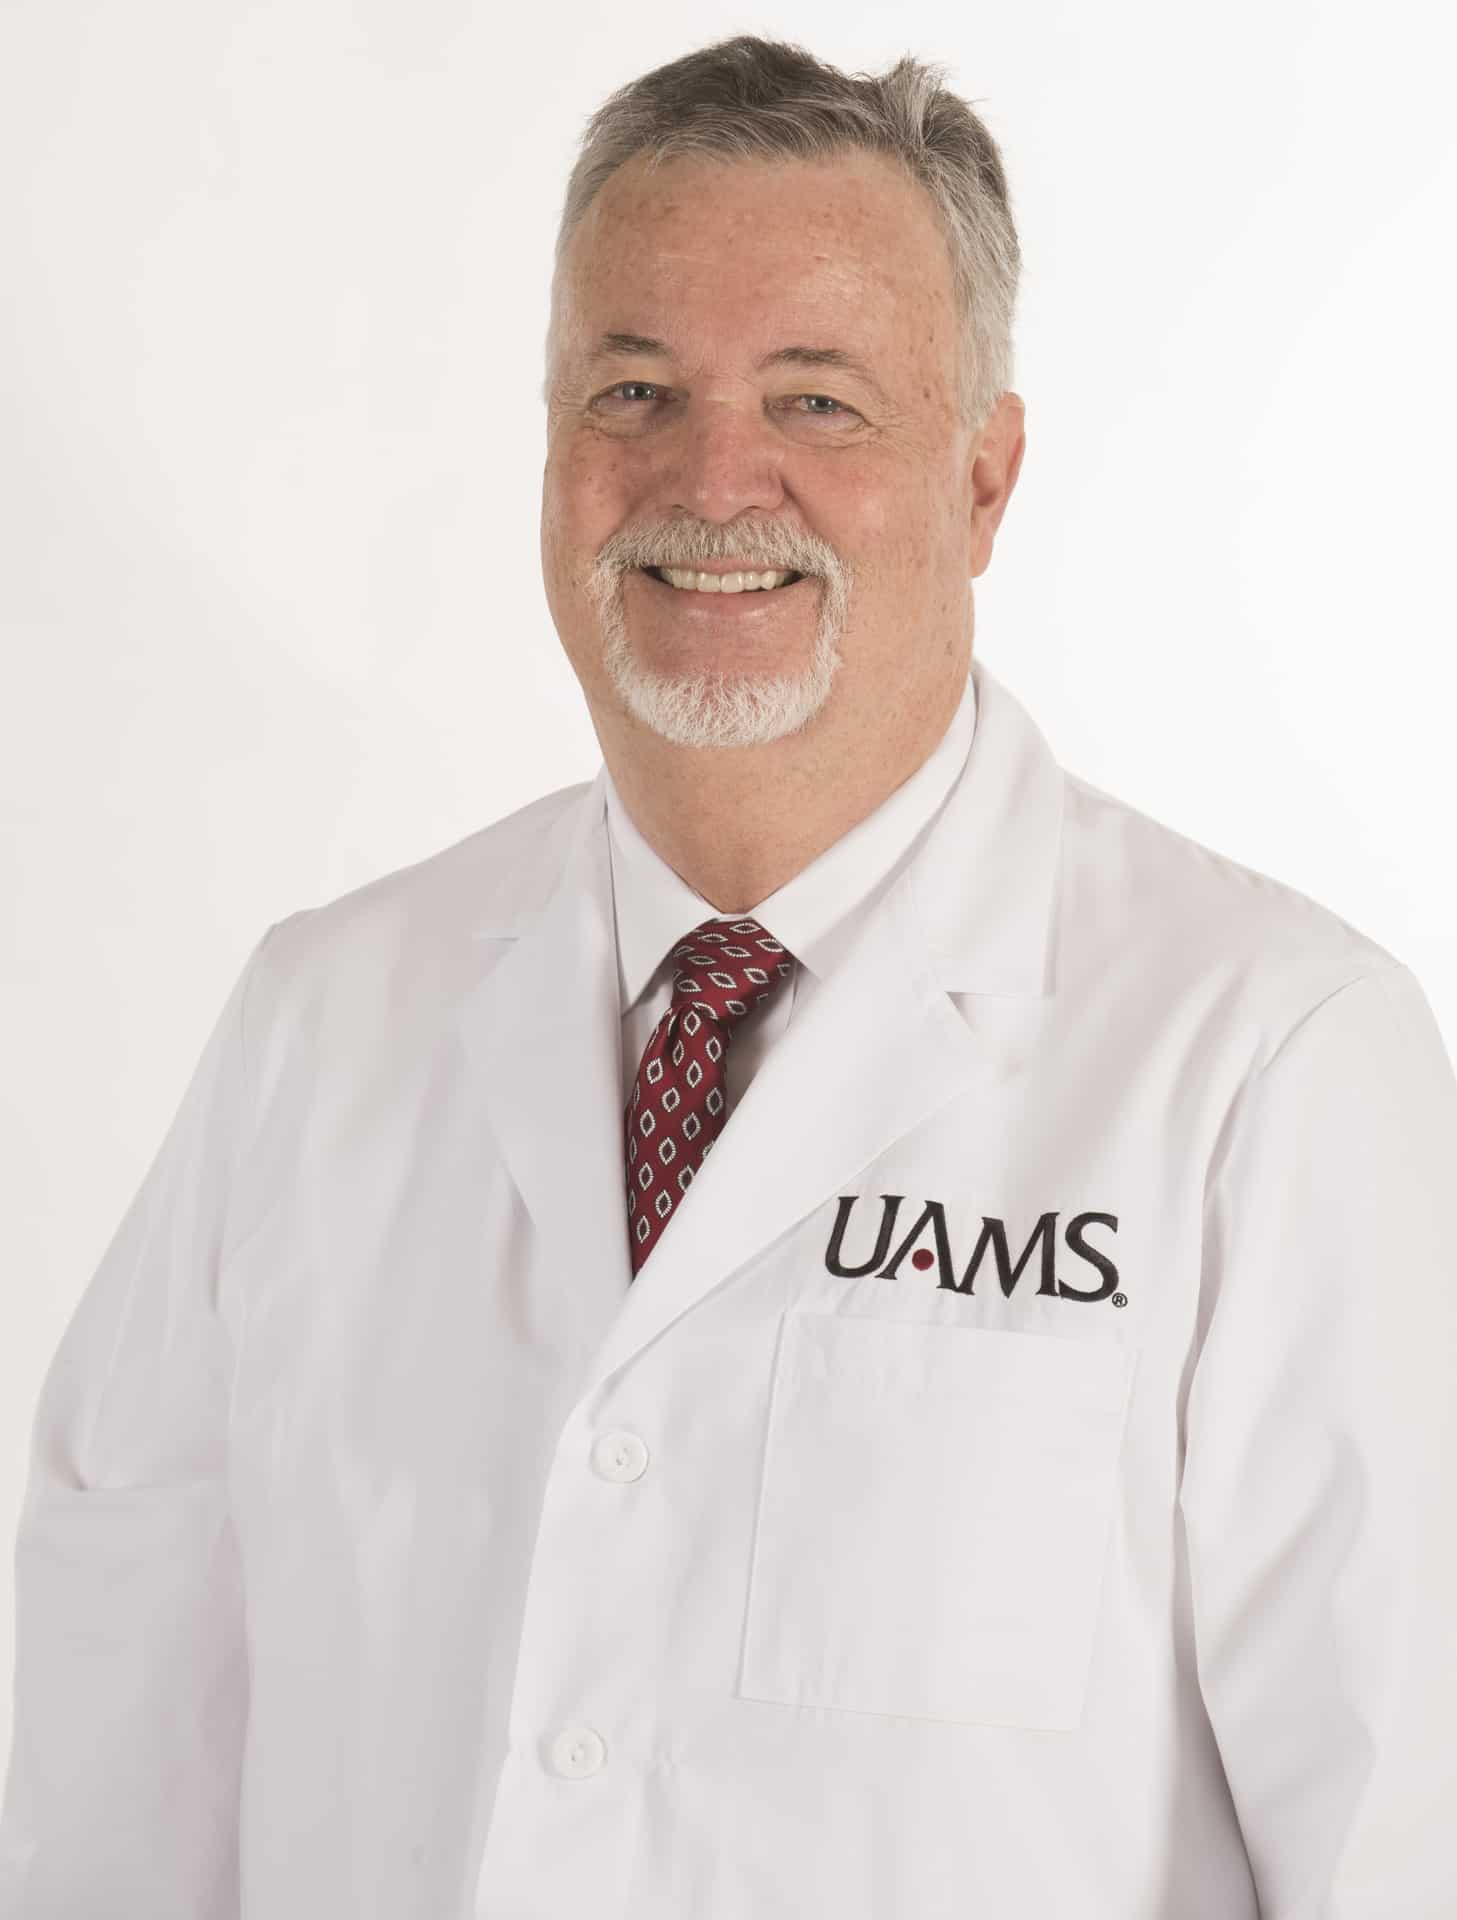 Shoulder Specialist Charles Pearce Joins UAMS | UAMS News